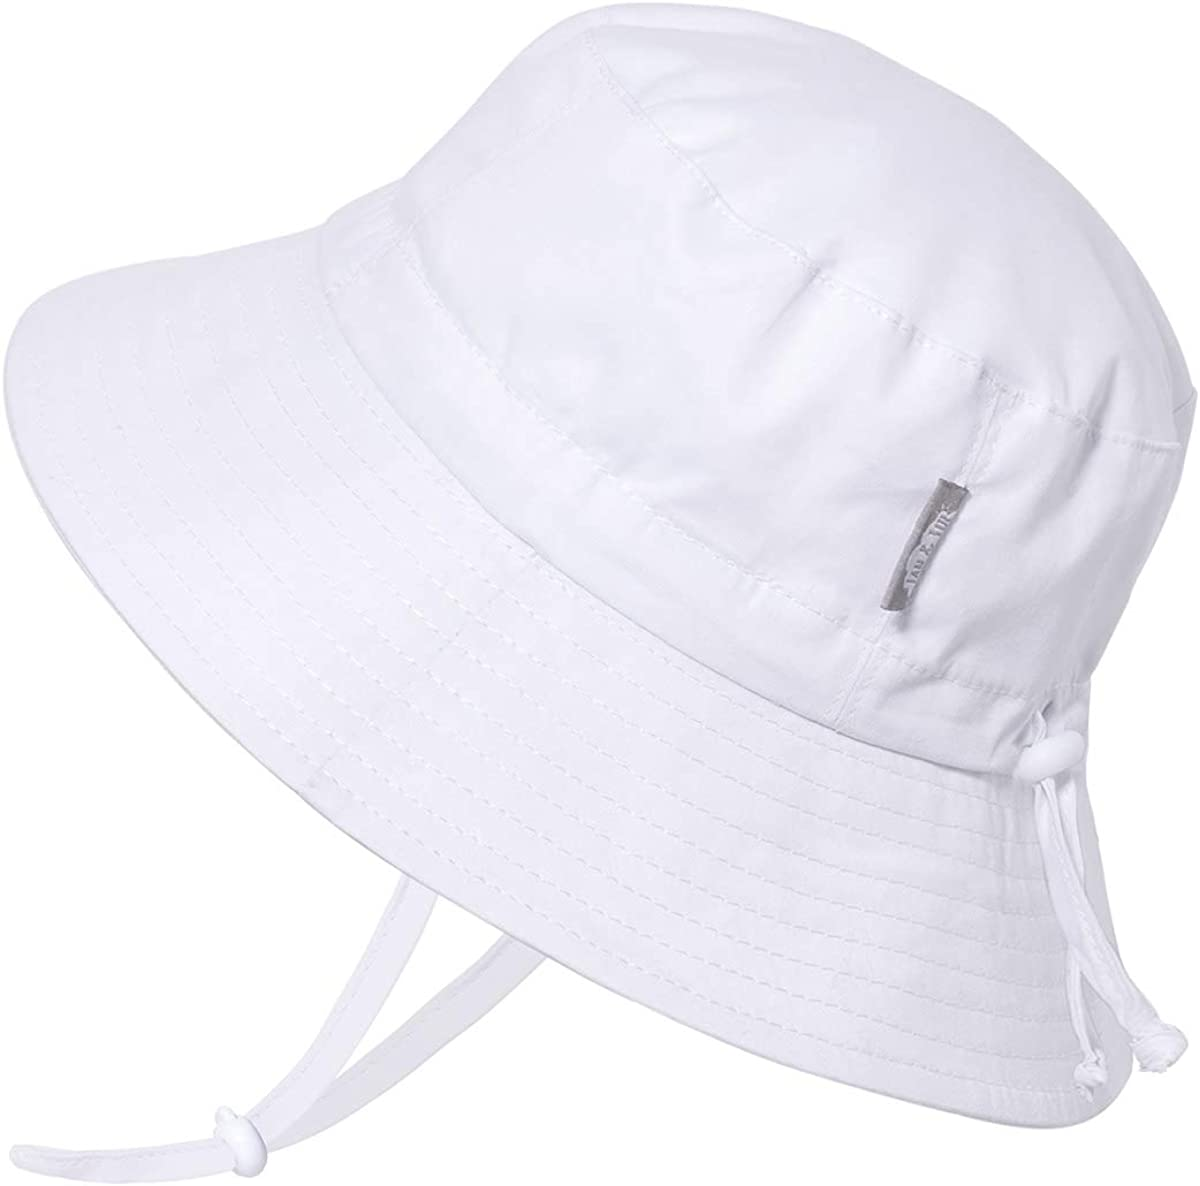 Jan /& Jul Baby Toddler Kids Breathable Cotton Bucket Sun-Hat 50 UPF Stay-on Adjustable for Growth